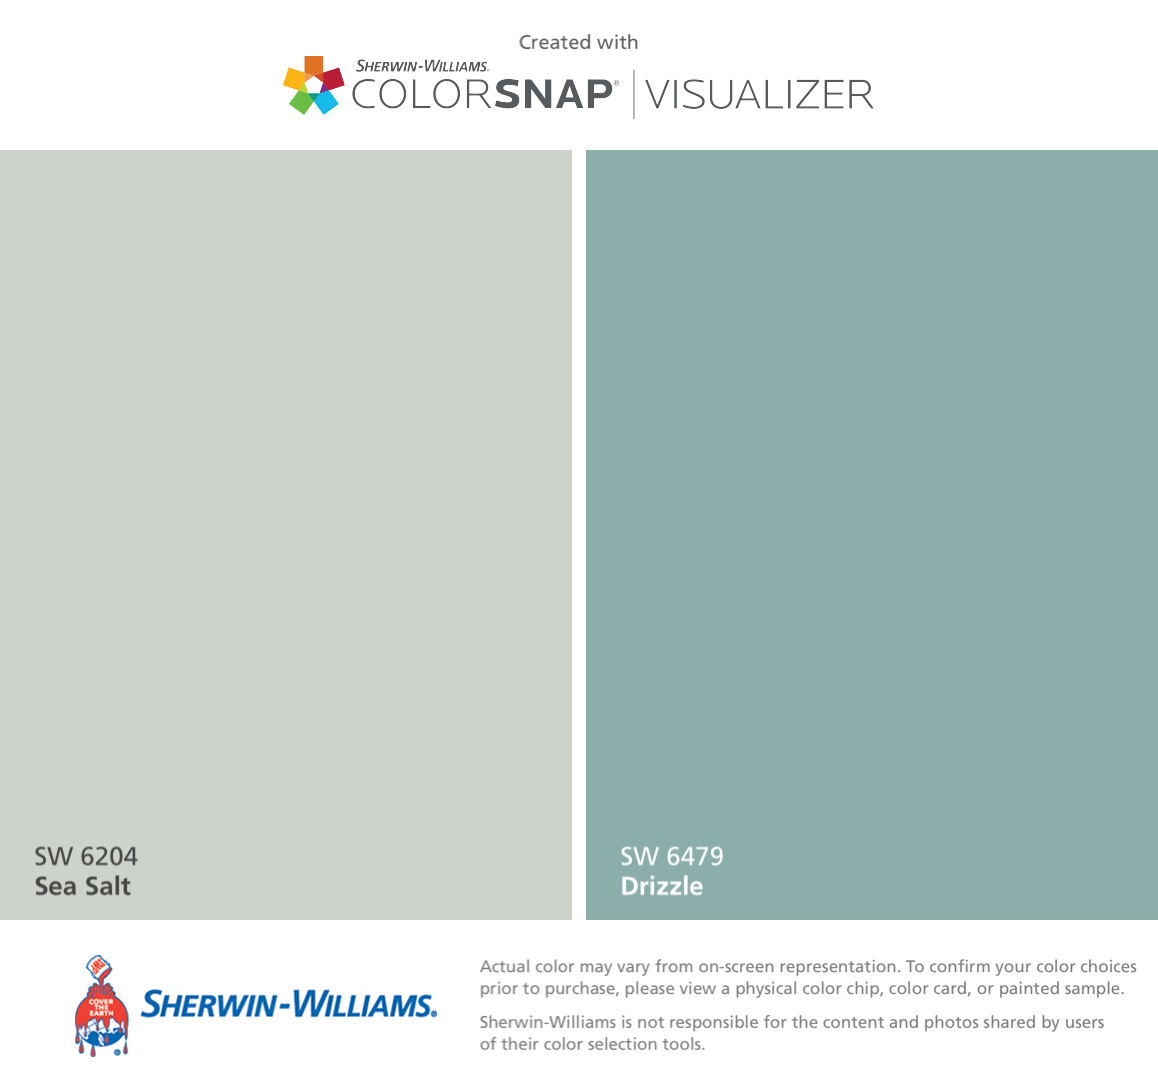 Teal Paint Colors Intense Teal Paint Color Sw 6943 By Sherwin Williams View